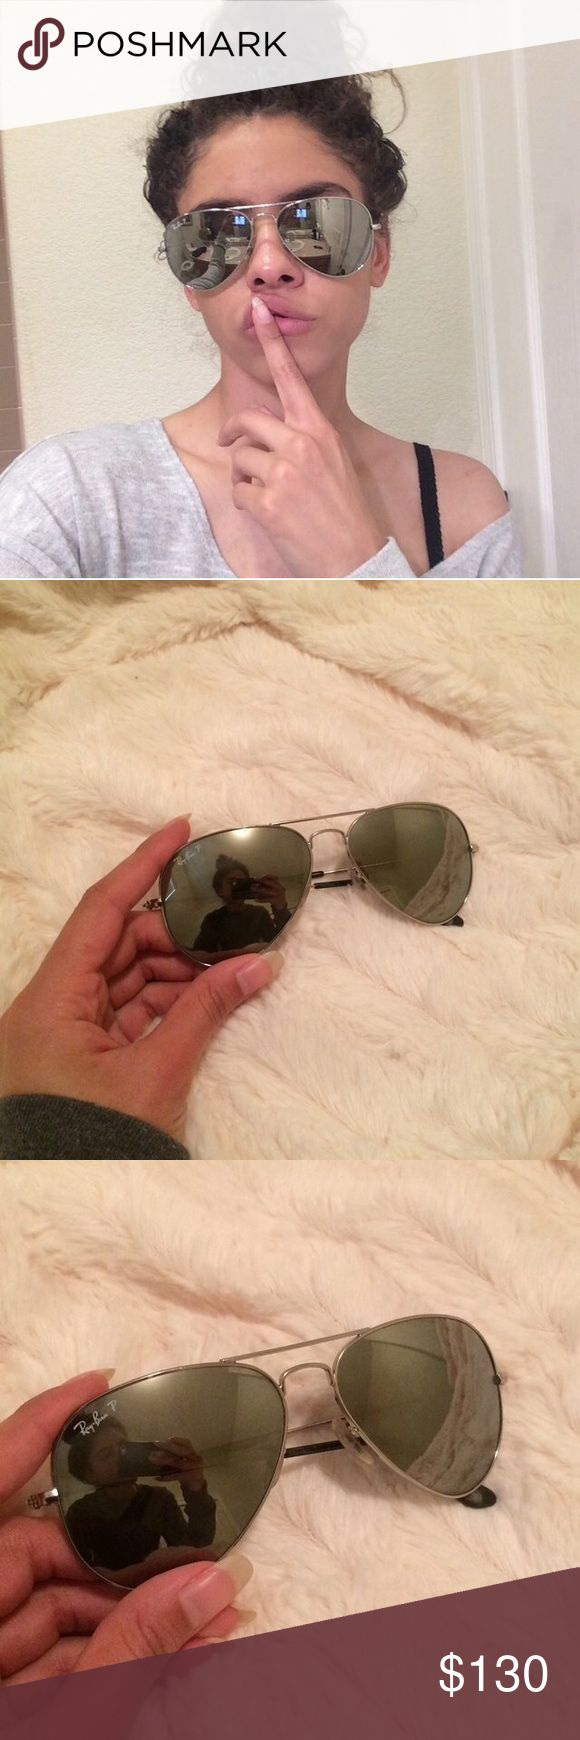 Charcoal silver Ray-Ban P aviator sunglasses💕 Charcoal gray/silver Ray-Ban P reflective aviator sunglasses 🌸 worn once,10/10 condition! Ray-Ban Accessories Glasses